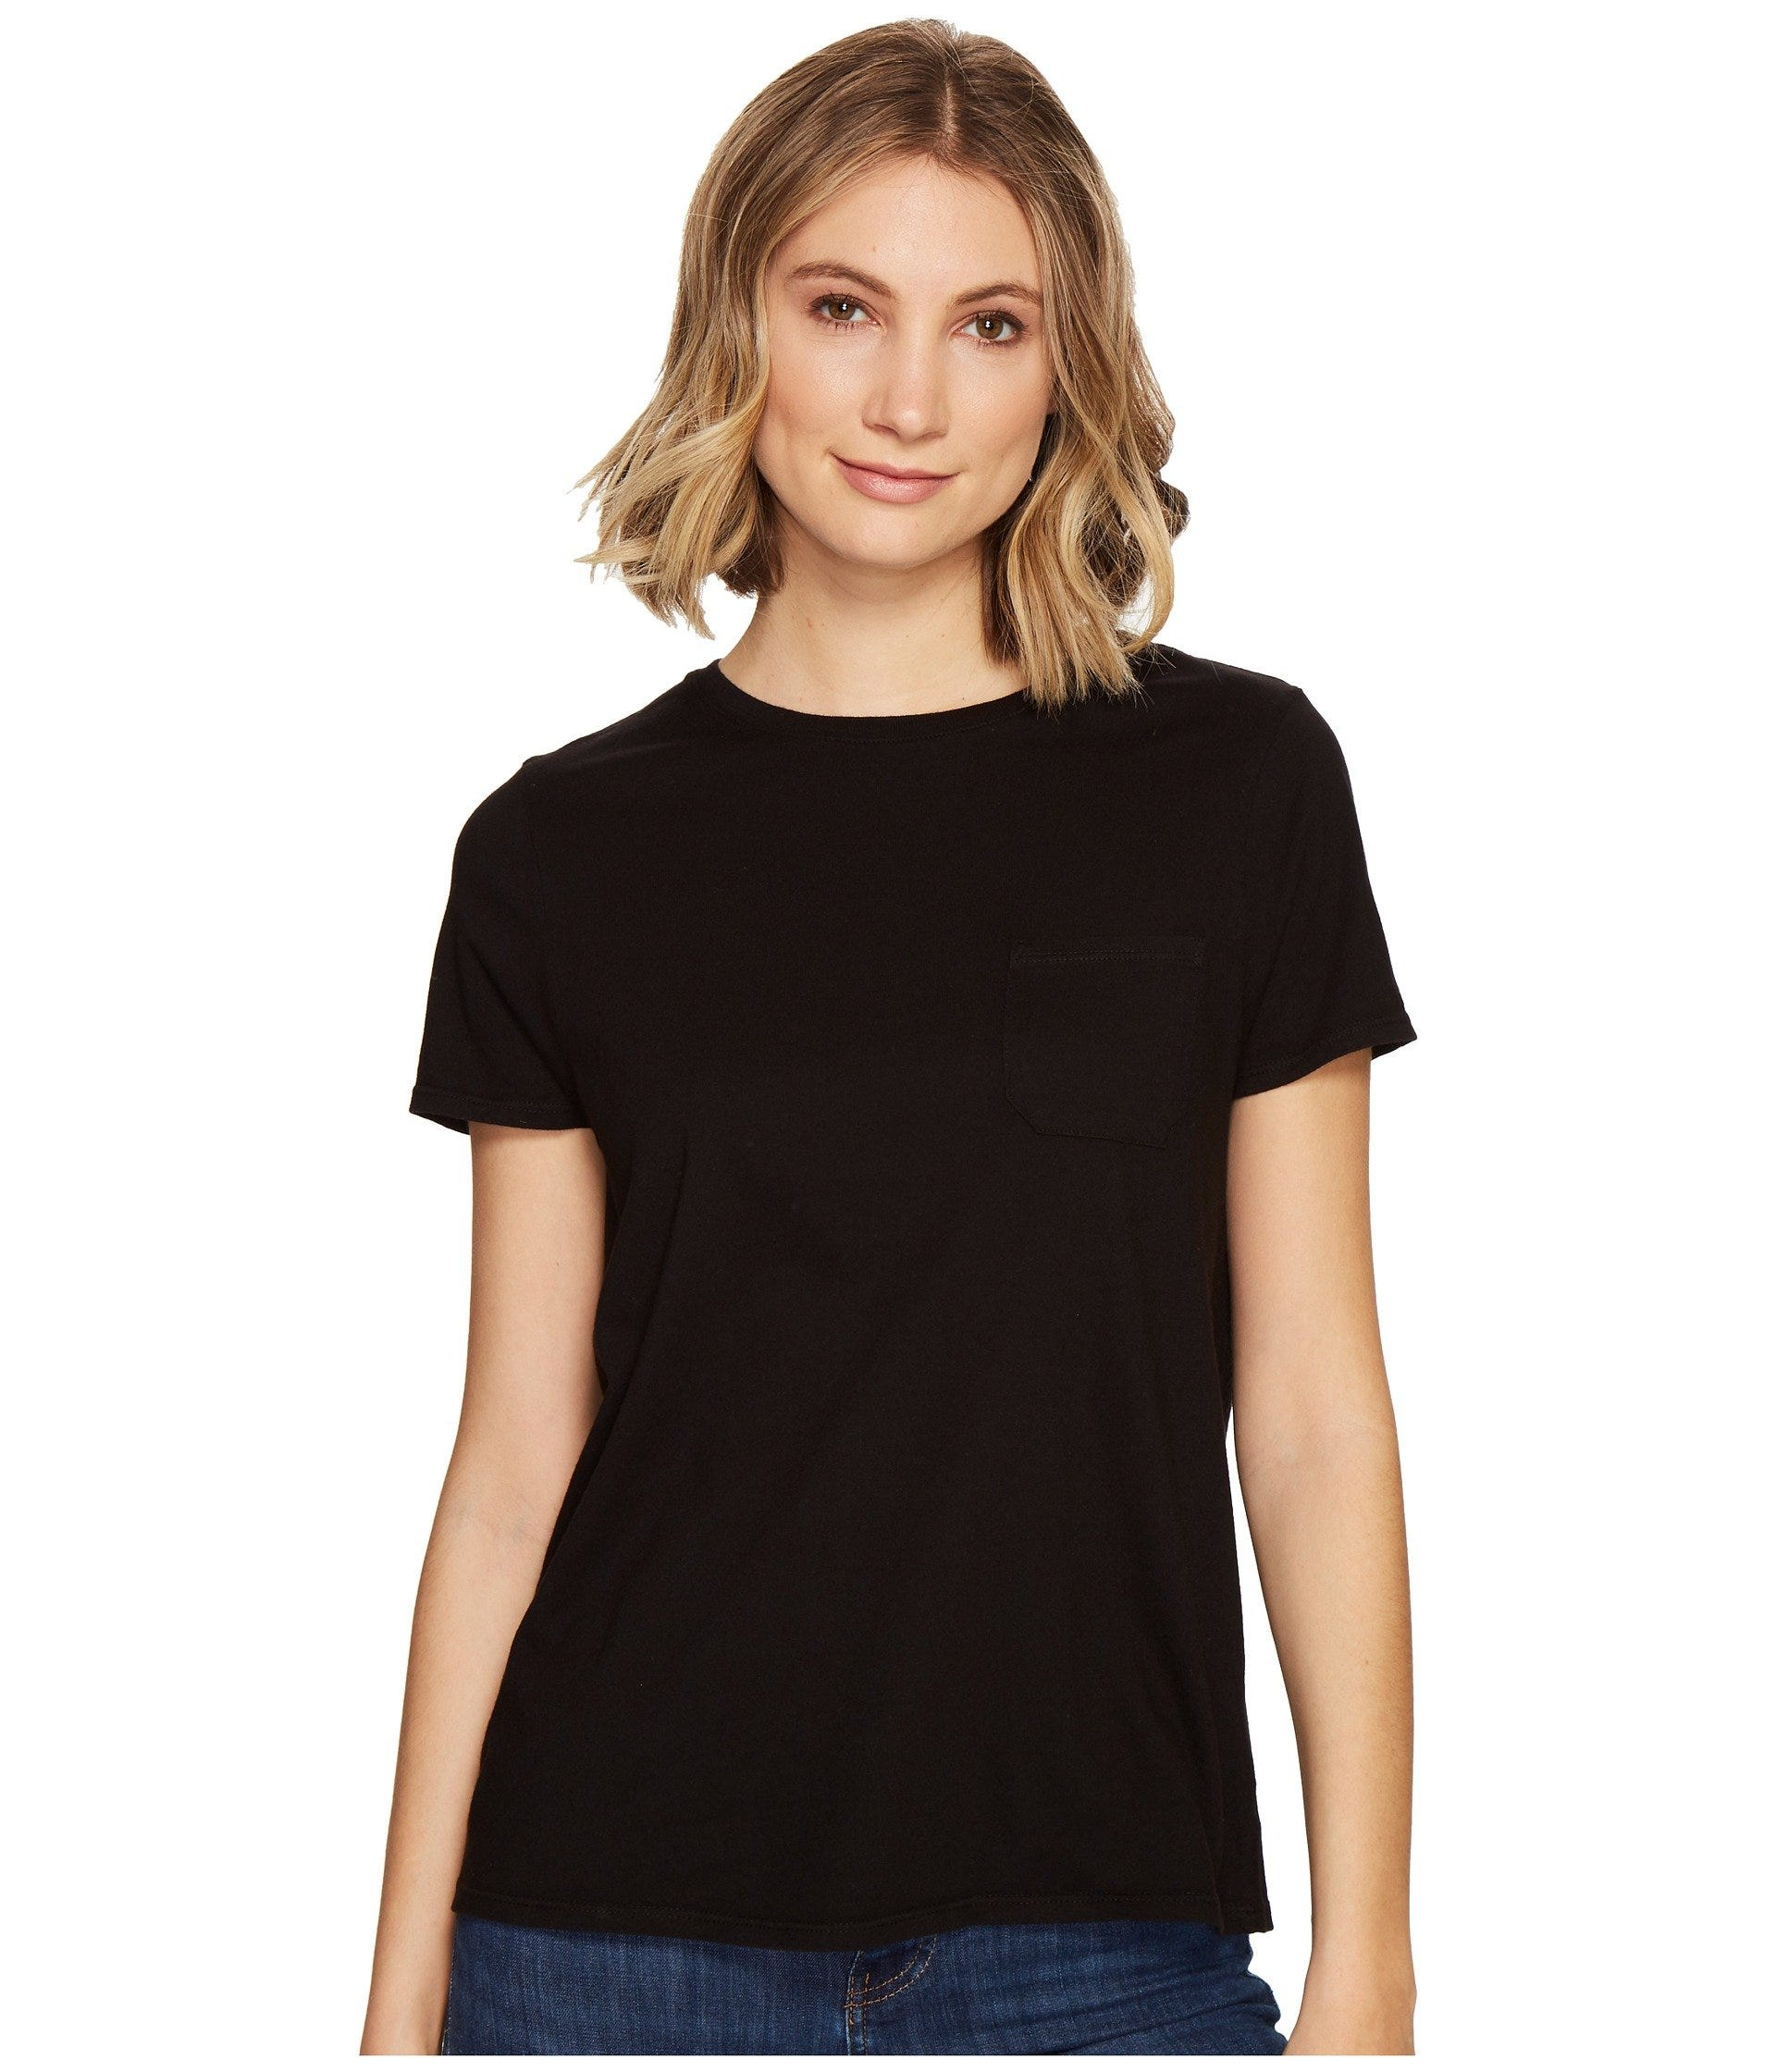 db5c370a Best Quality Womens Black T-Shirts 2019 Brand Reviews